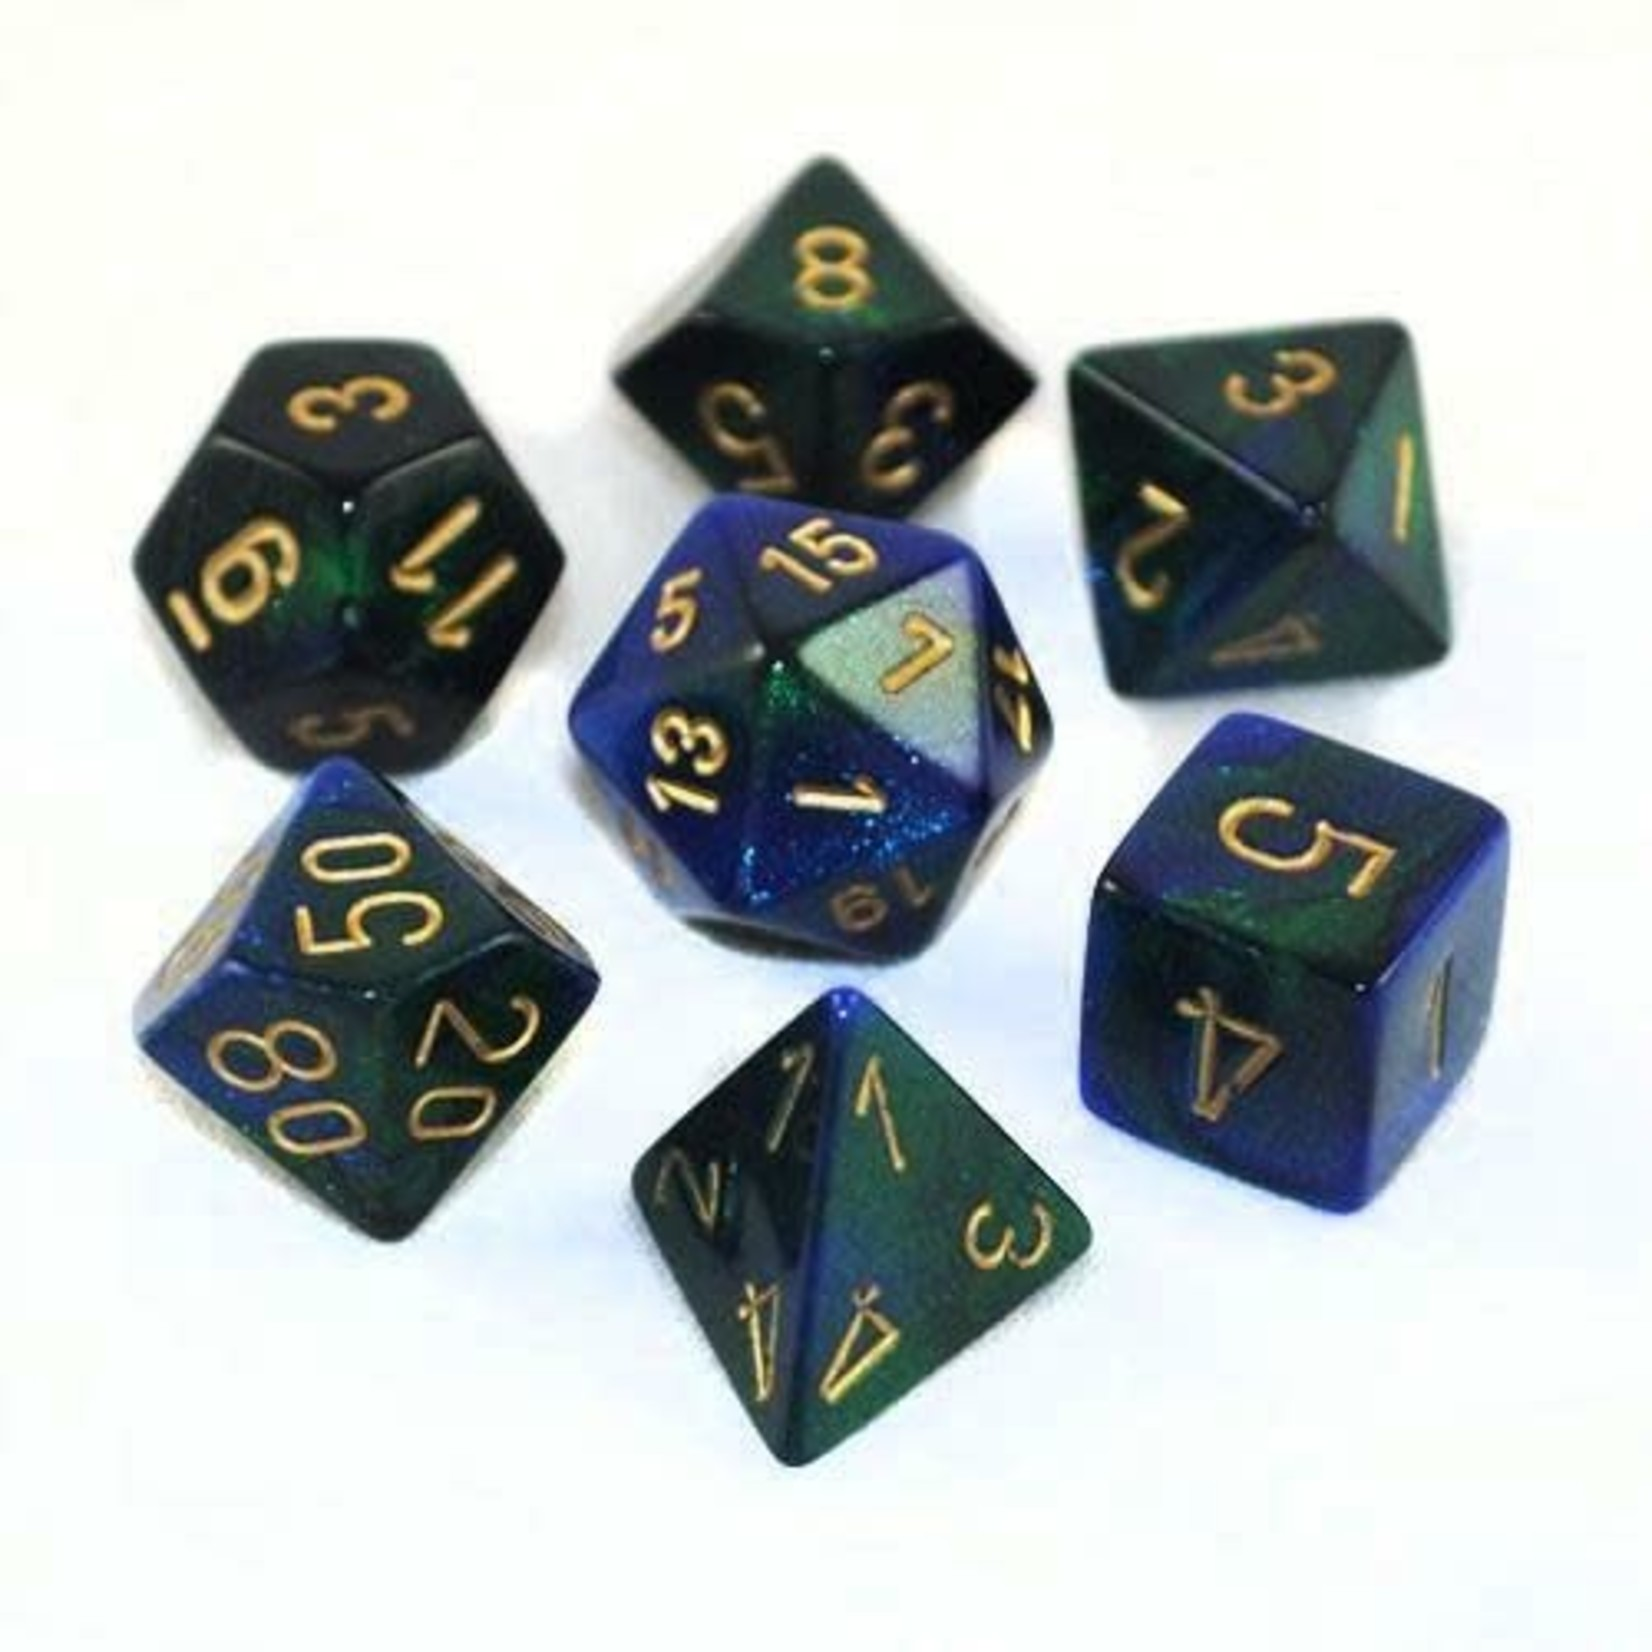 Chessex Dice: 7-Set Cube Gemini#3 Blue Green with Gold Numbers (Chessex)